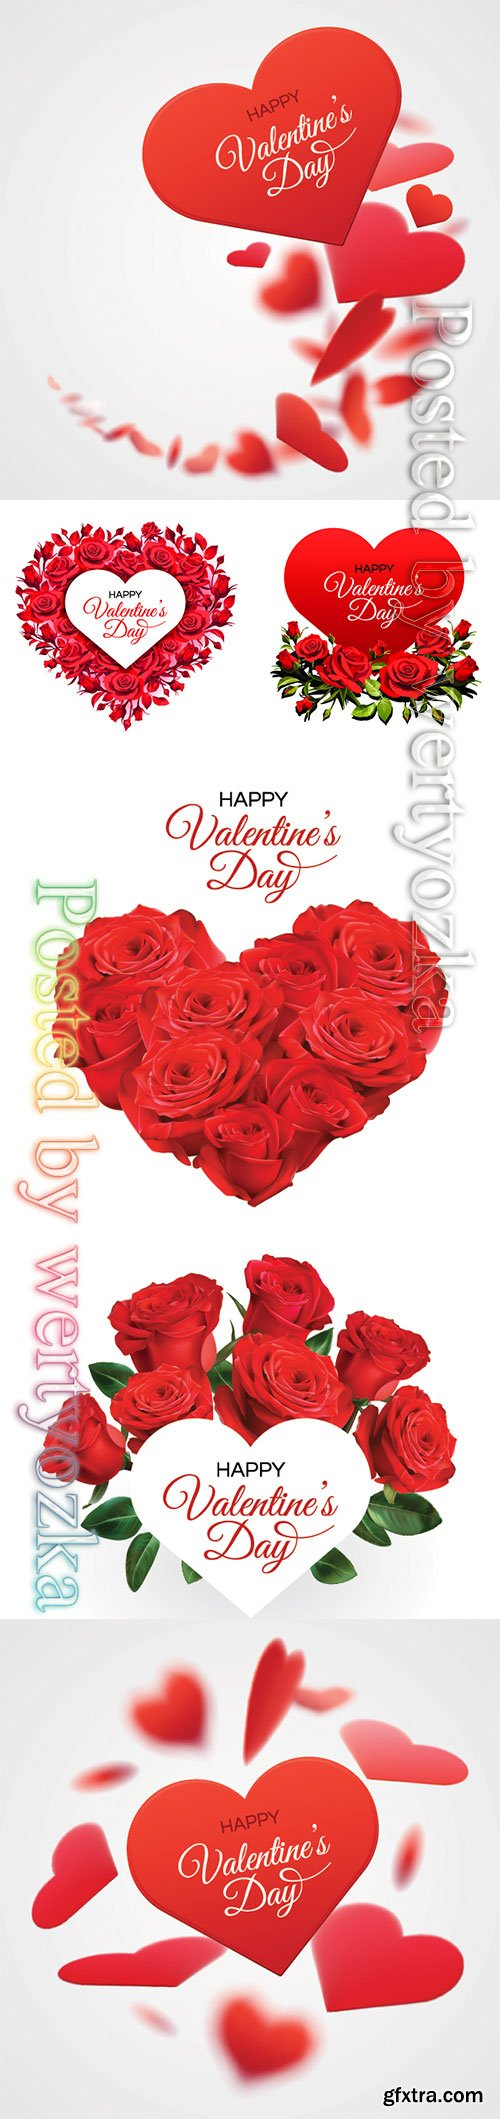 Valentine's Day greeting card template, red roses